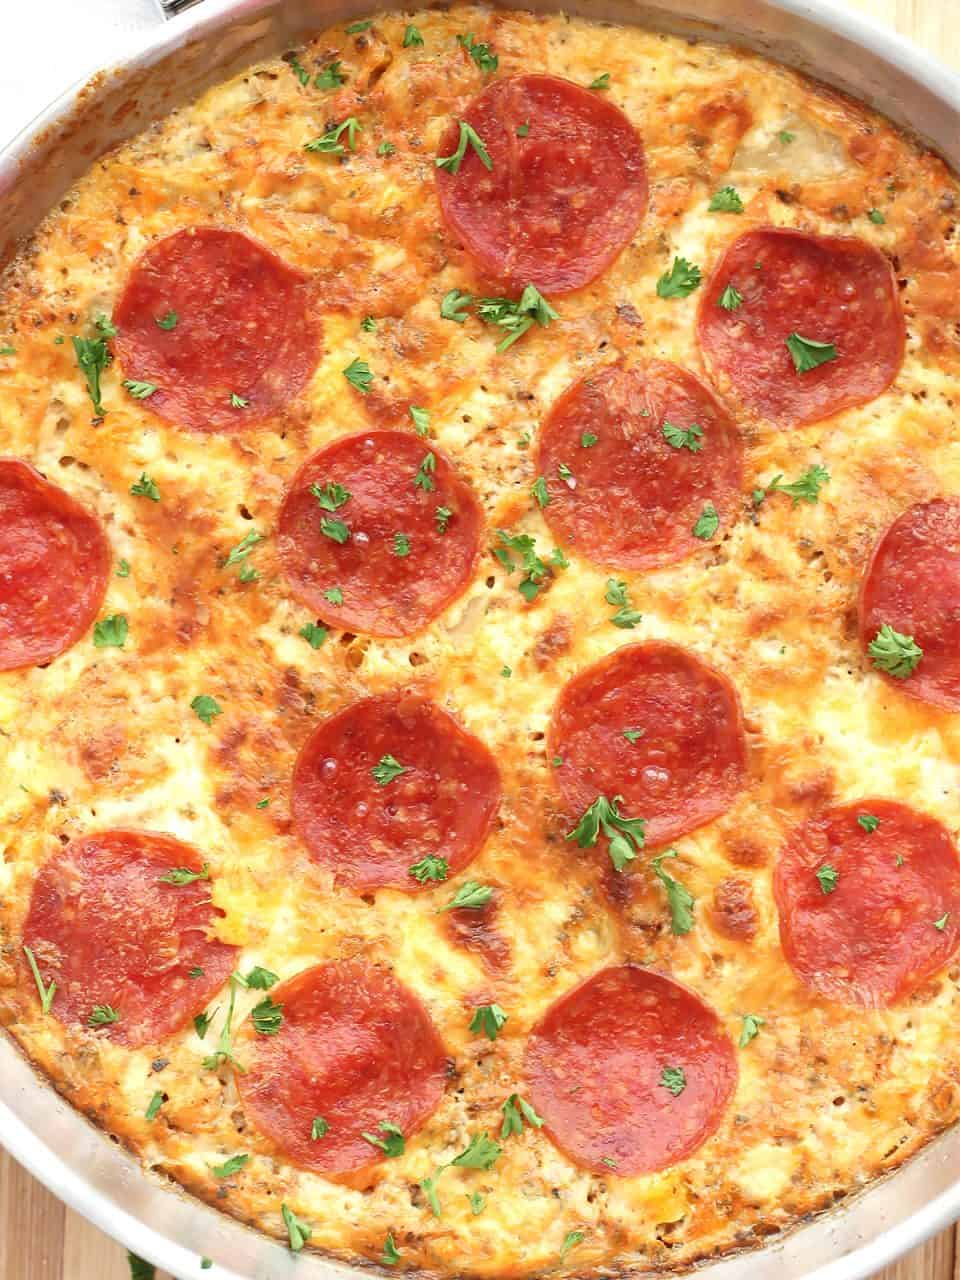 Close up of the pepperoni on top of the frittata.